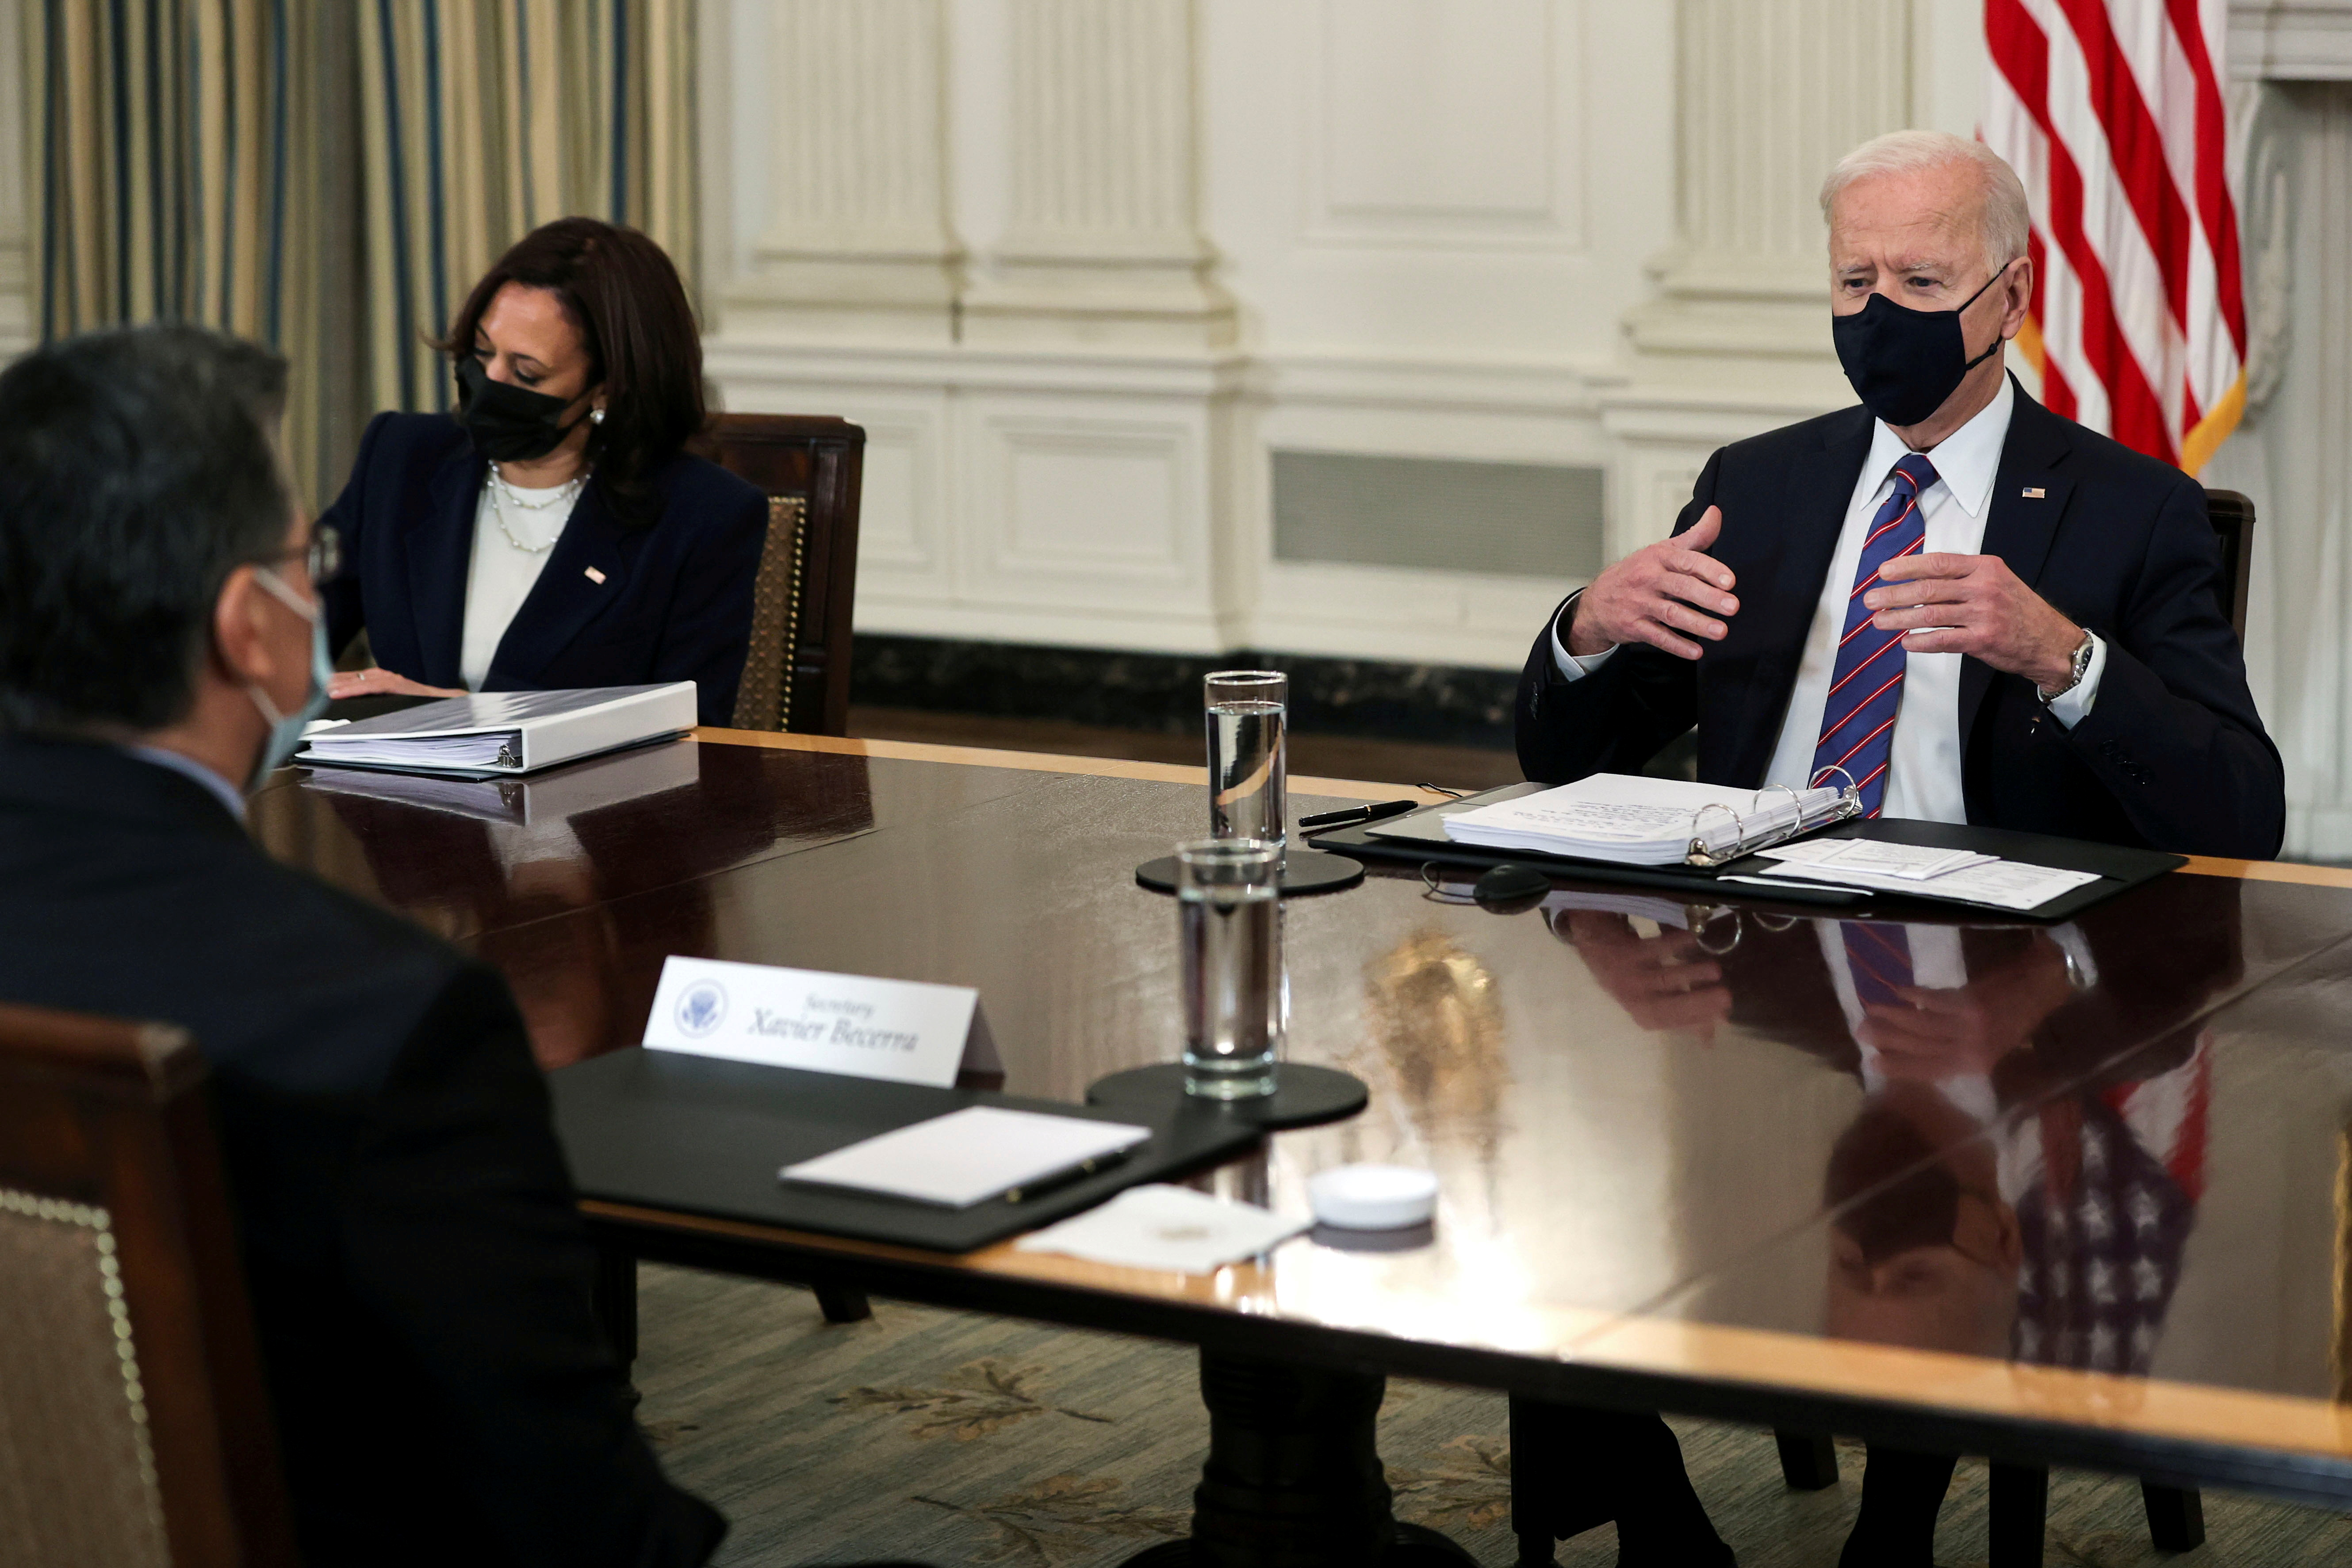 U.S. President Joe Biden is flanked by Vice President Kamala Harris as he speaks with HHS Secretary Xavier Becerra during a meeting with immigration advisers in the State Dining Room at the White House in Washington, U.S., March 24, 2021. REUTERS/Jonathan Ernst/File Photo